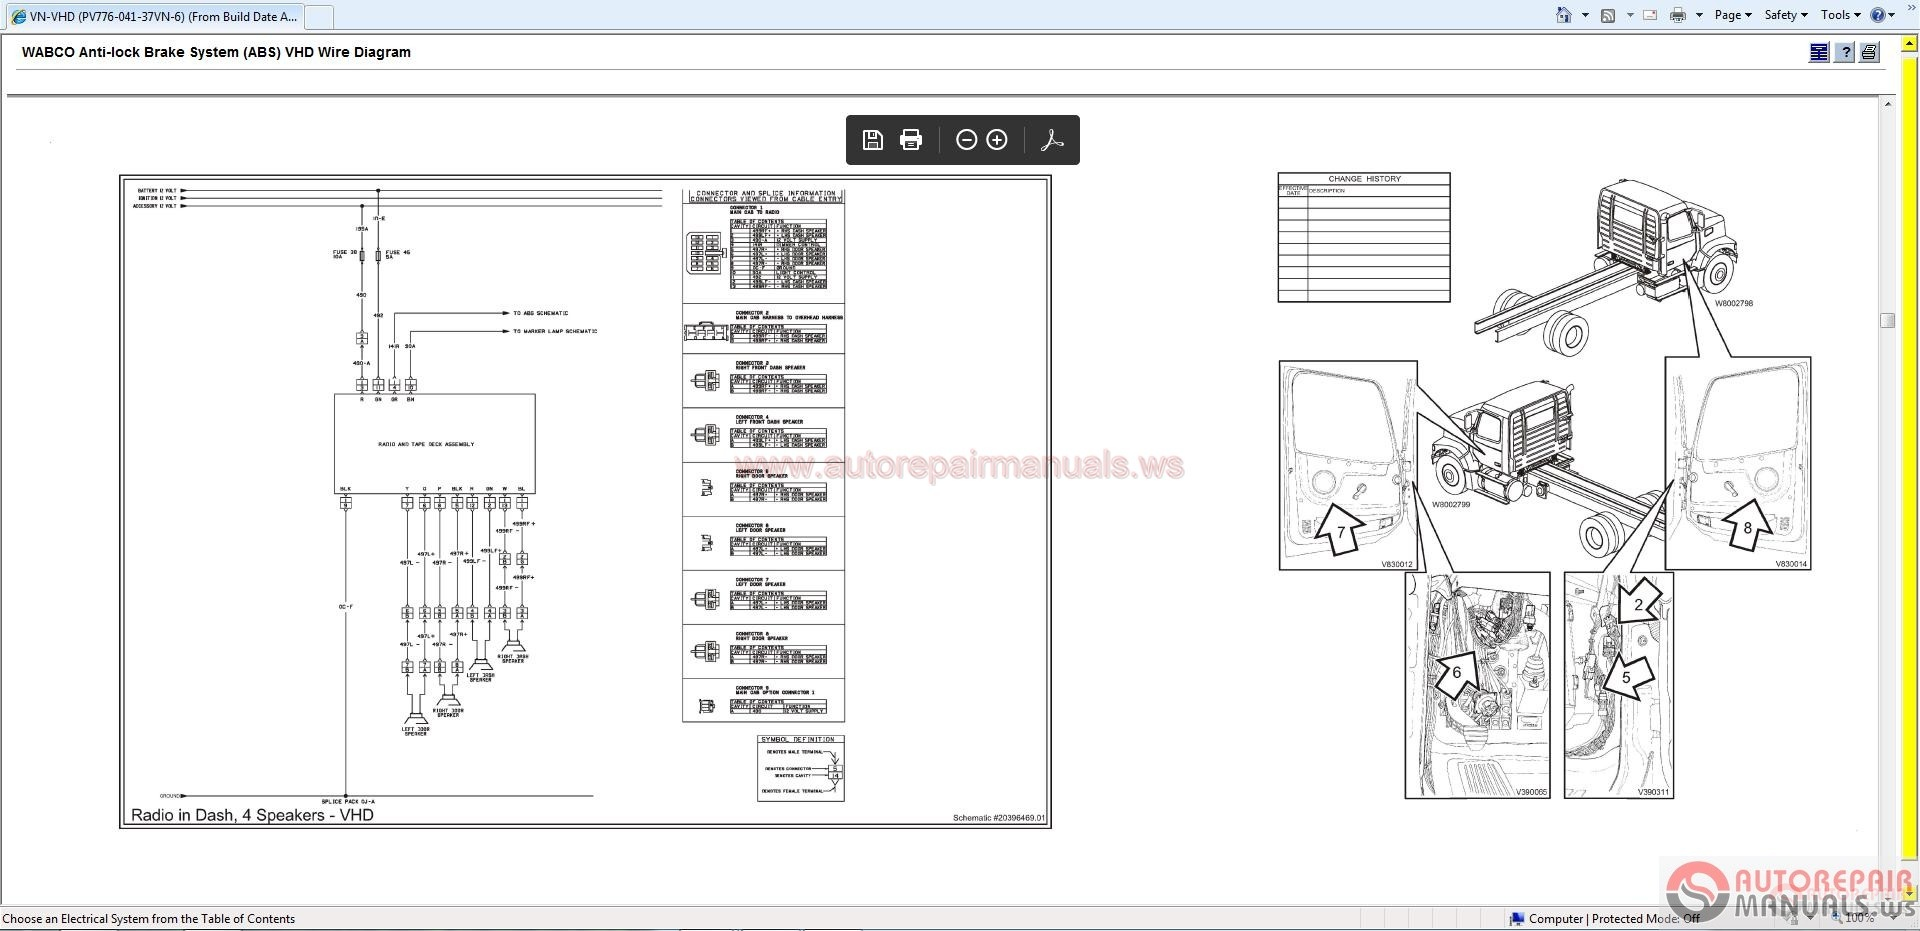 Volvo Vhd Wiring Diagram Diagrams Western Star Schematic Schematics 2002 Xc70 Electrical